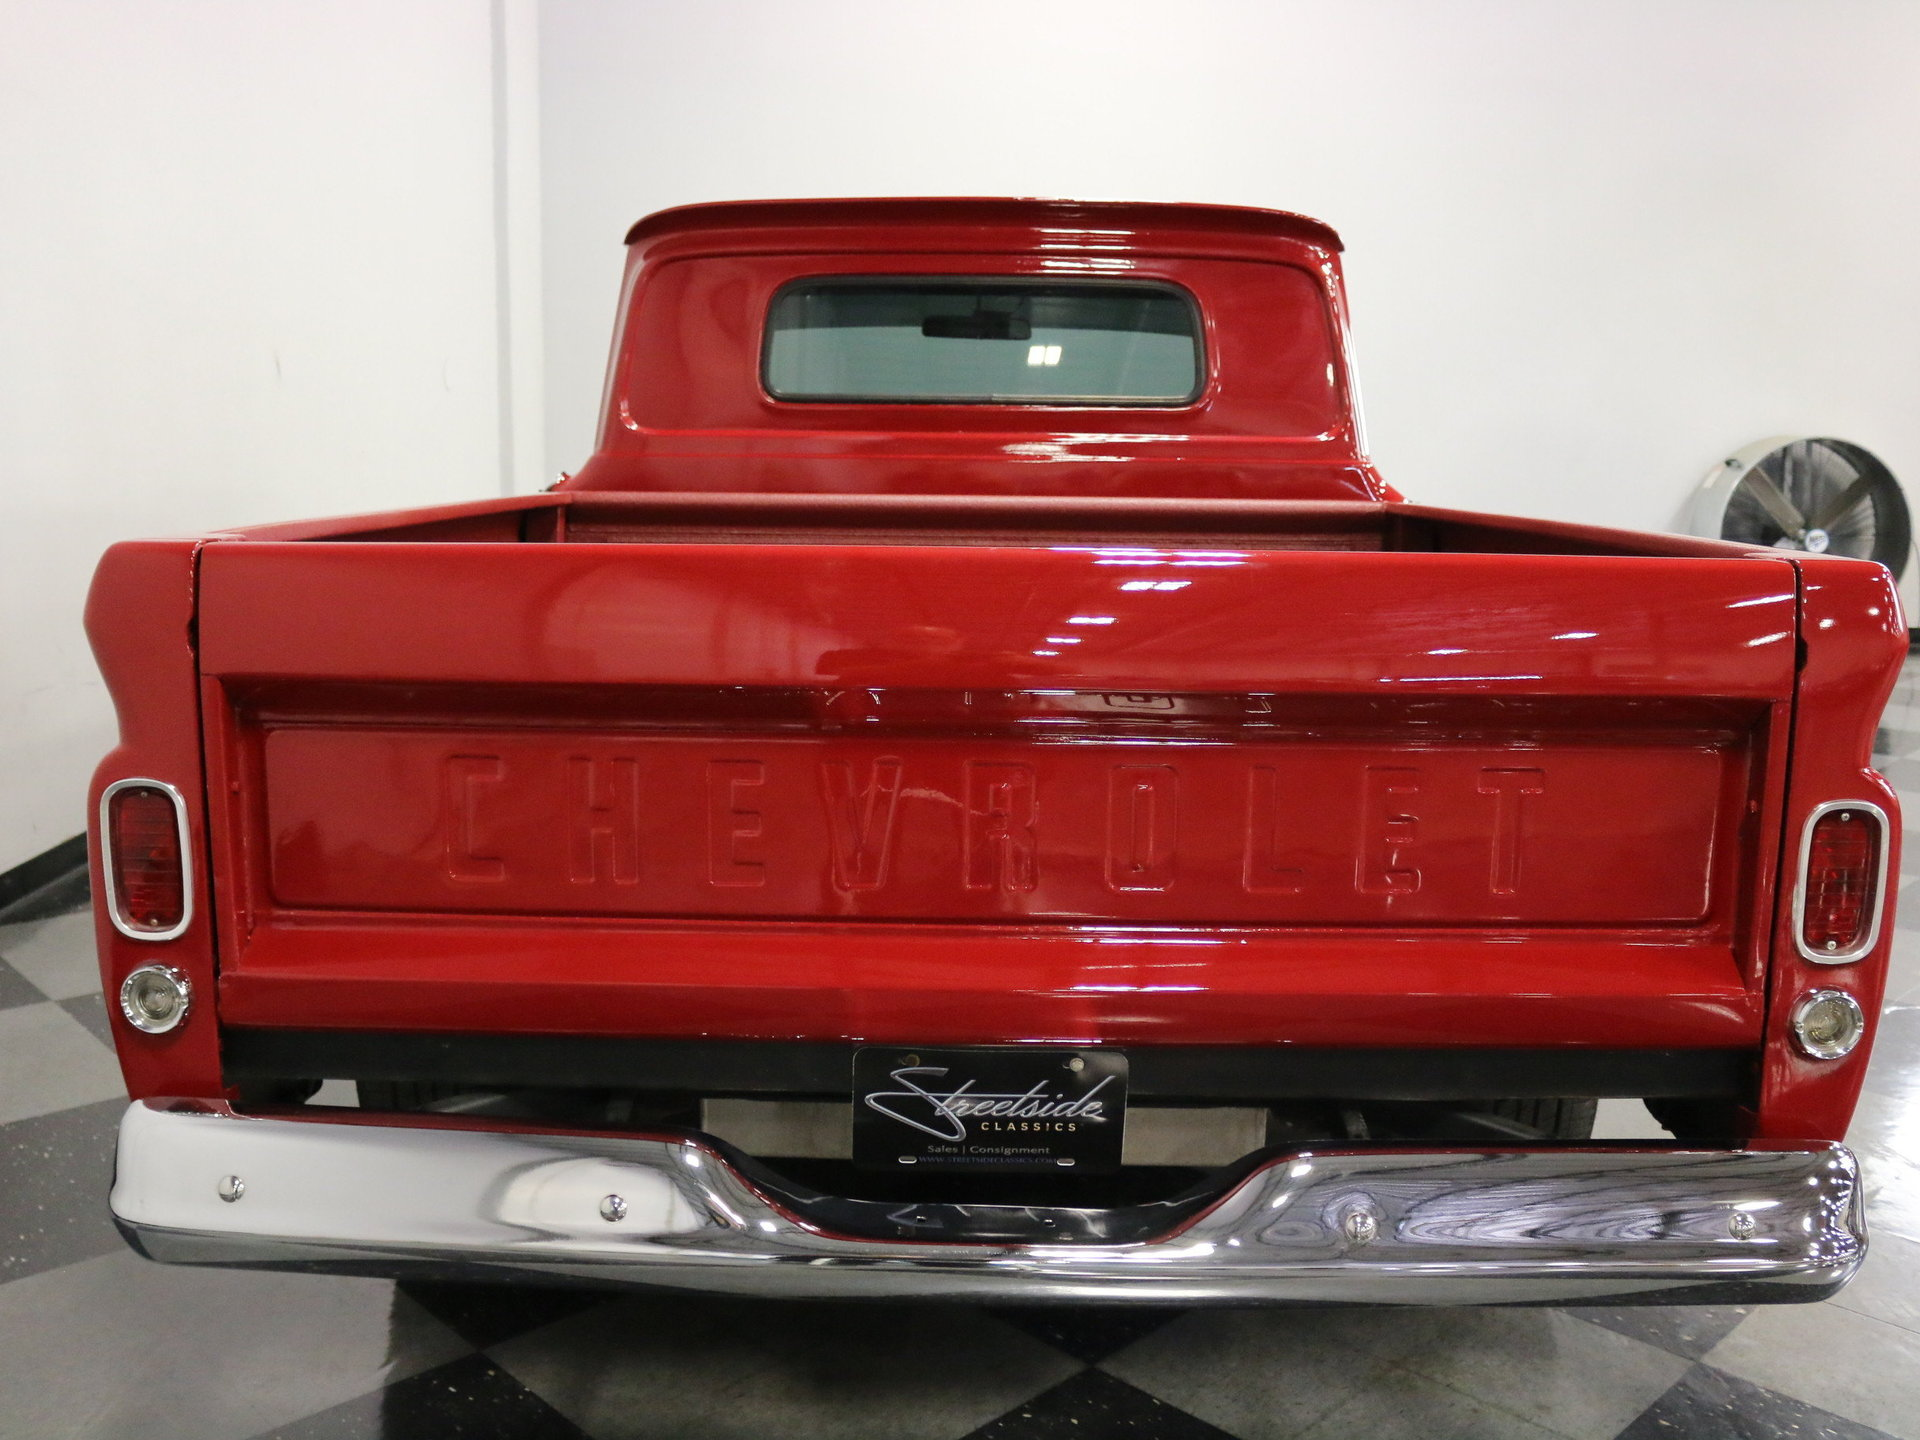 1966 Chevrolet C10 Streetside Classics The Nations Trusted Chevy Trucks For Sale Show More Photos